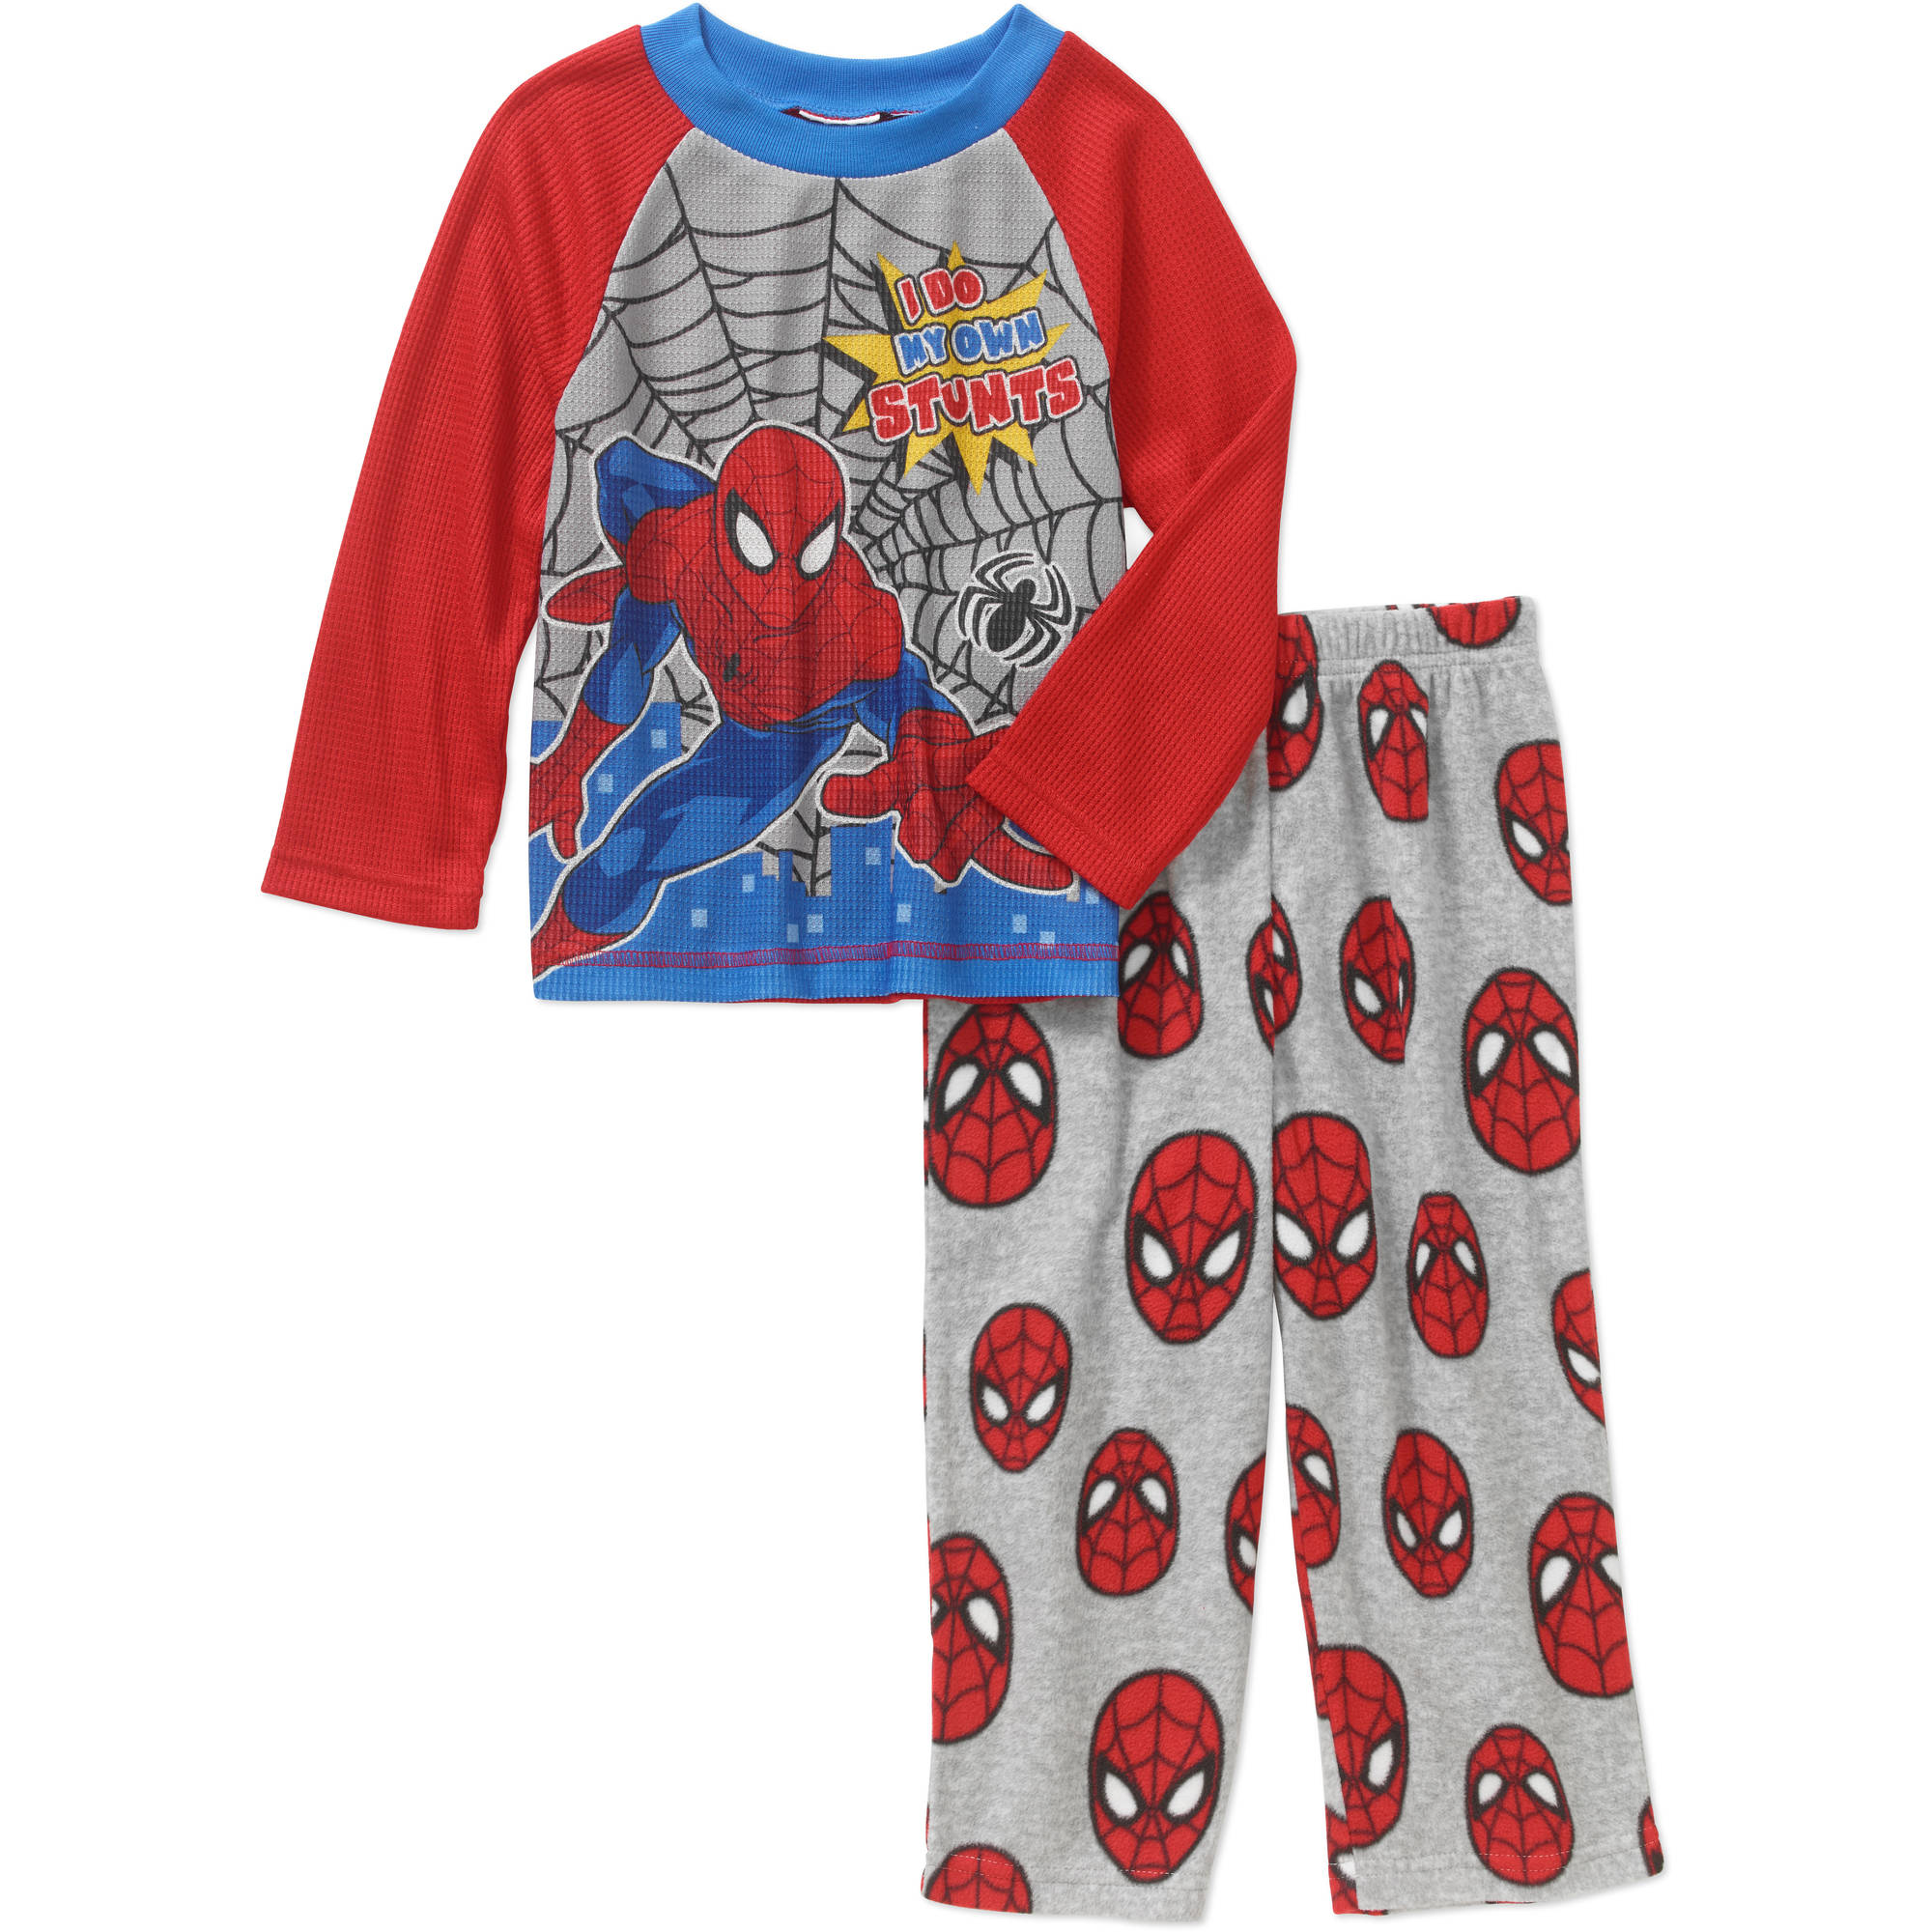 Spider-Man Toddler Boys' Long Sleeve Top with Fleece Pants Pajama 2pc Set